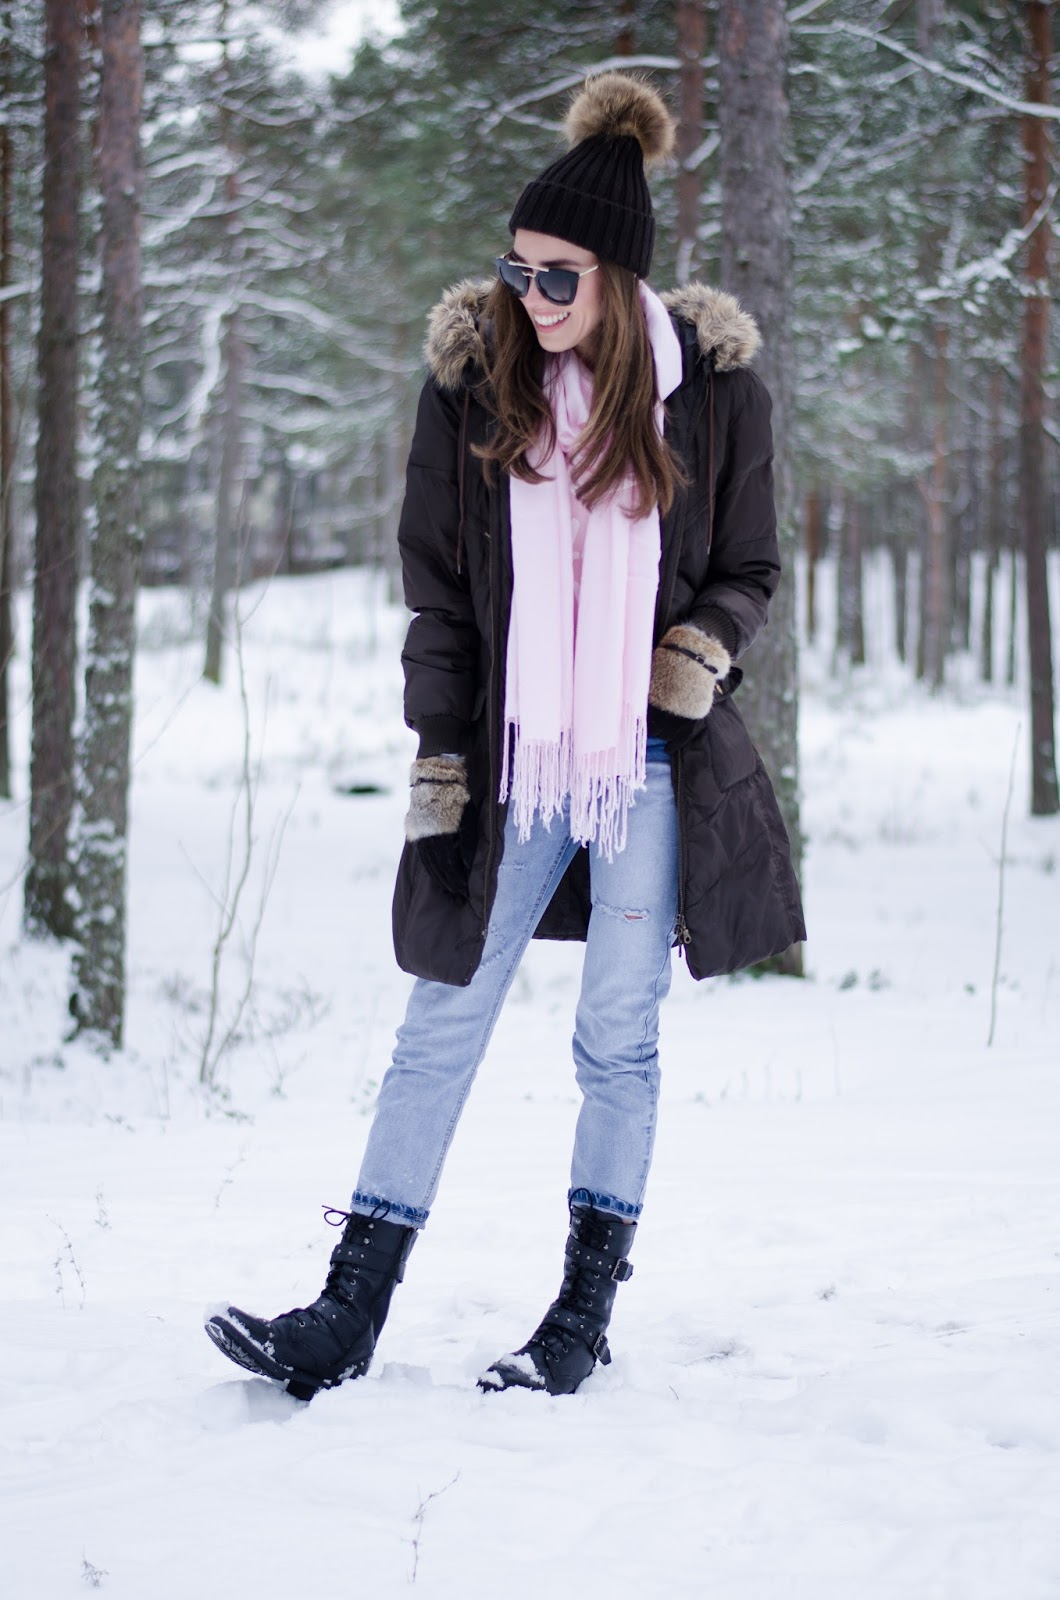 warm winter snow outfit